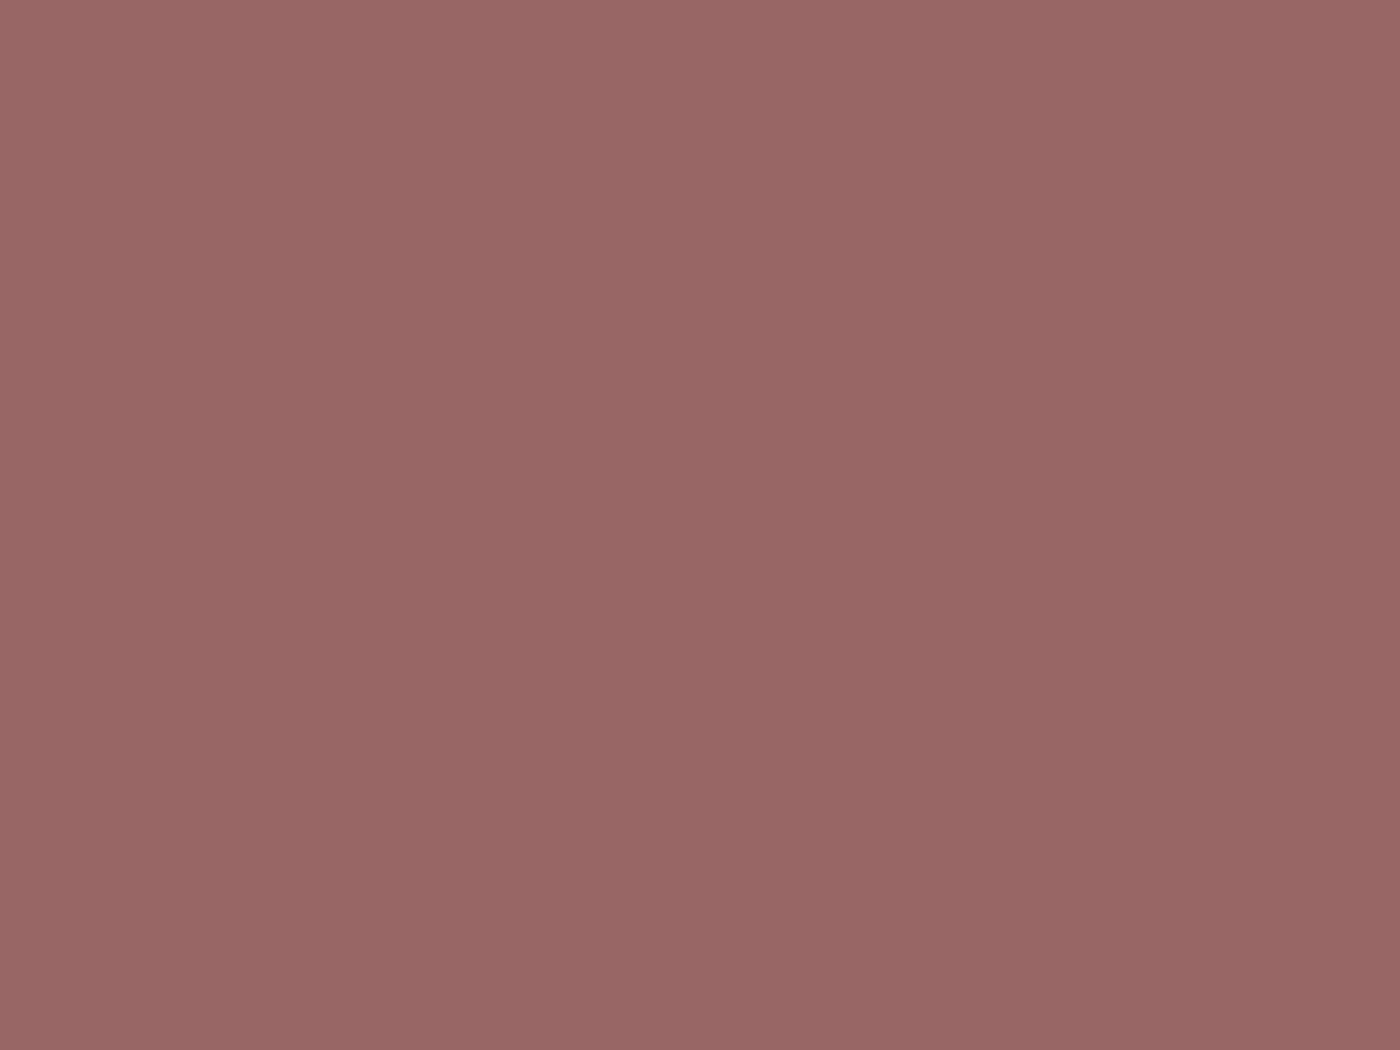 1400x1050 Copper Rose Solid Color Background